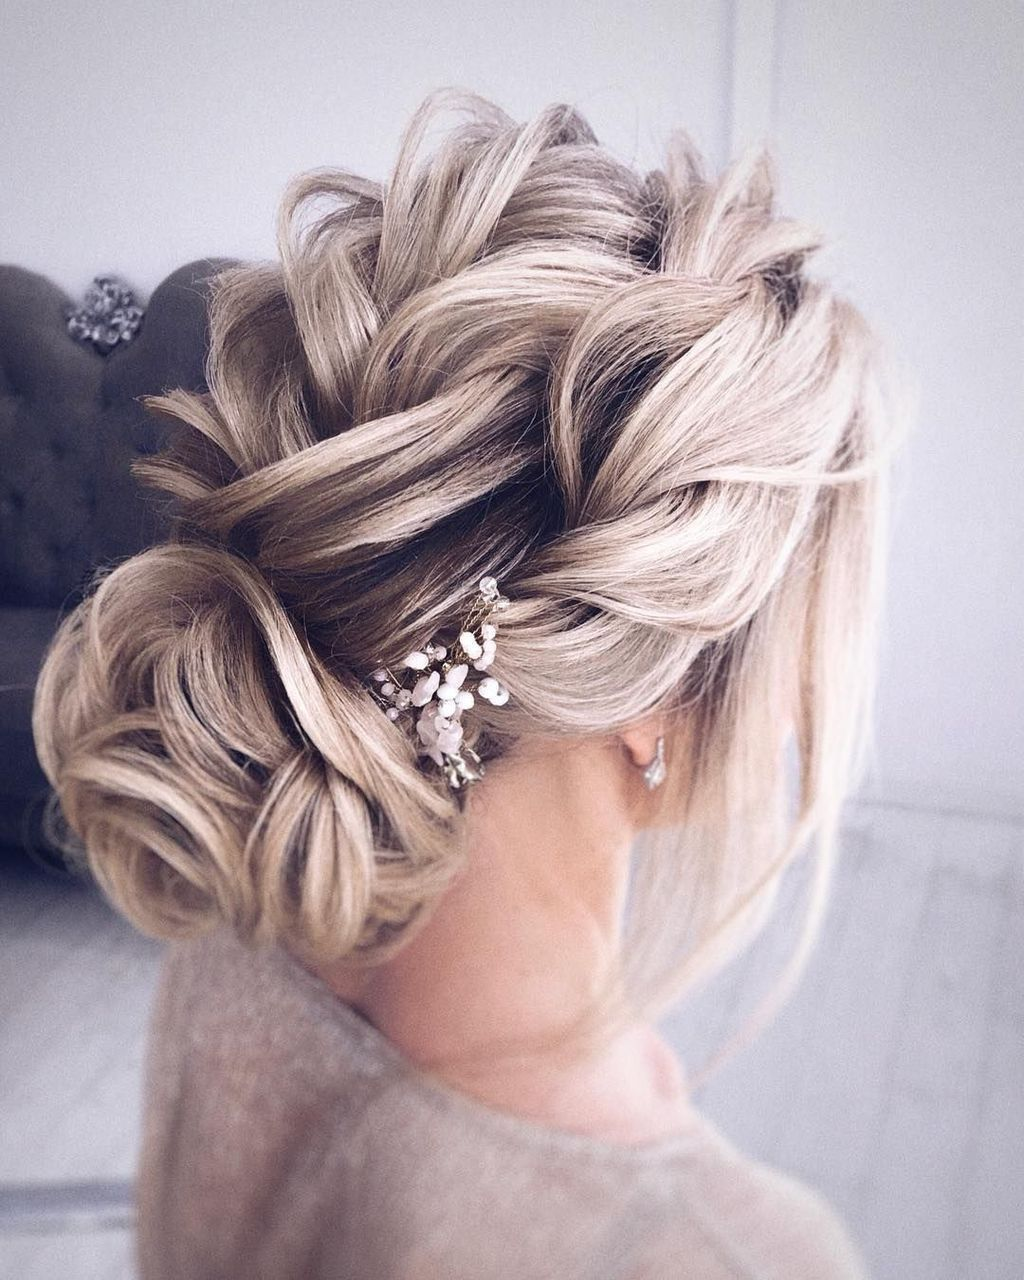 pin by brittany noel on hair | hair, bridesmaid hair